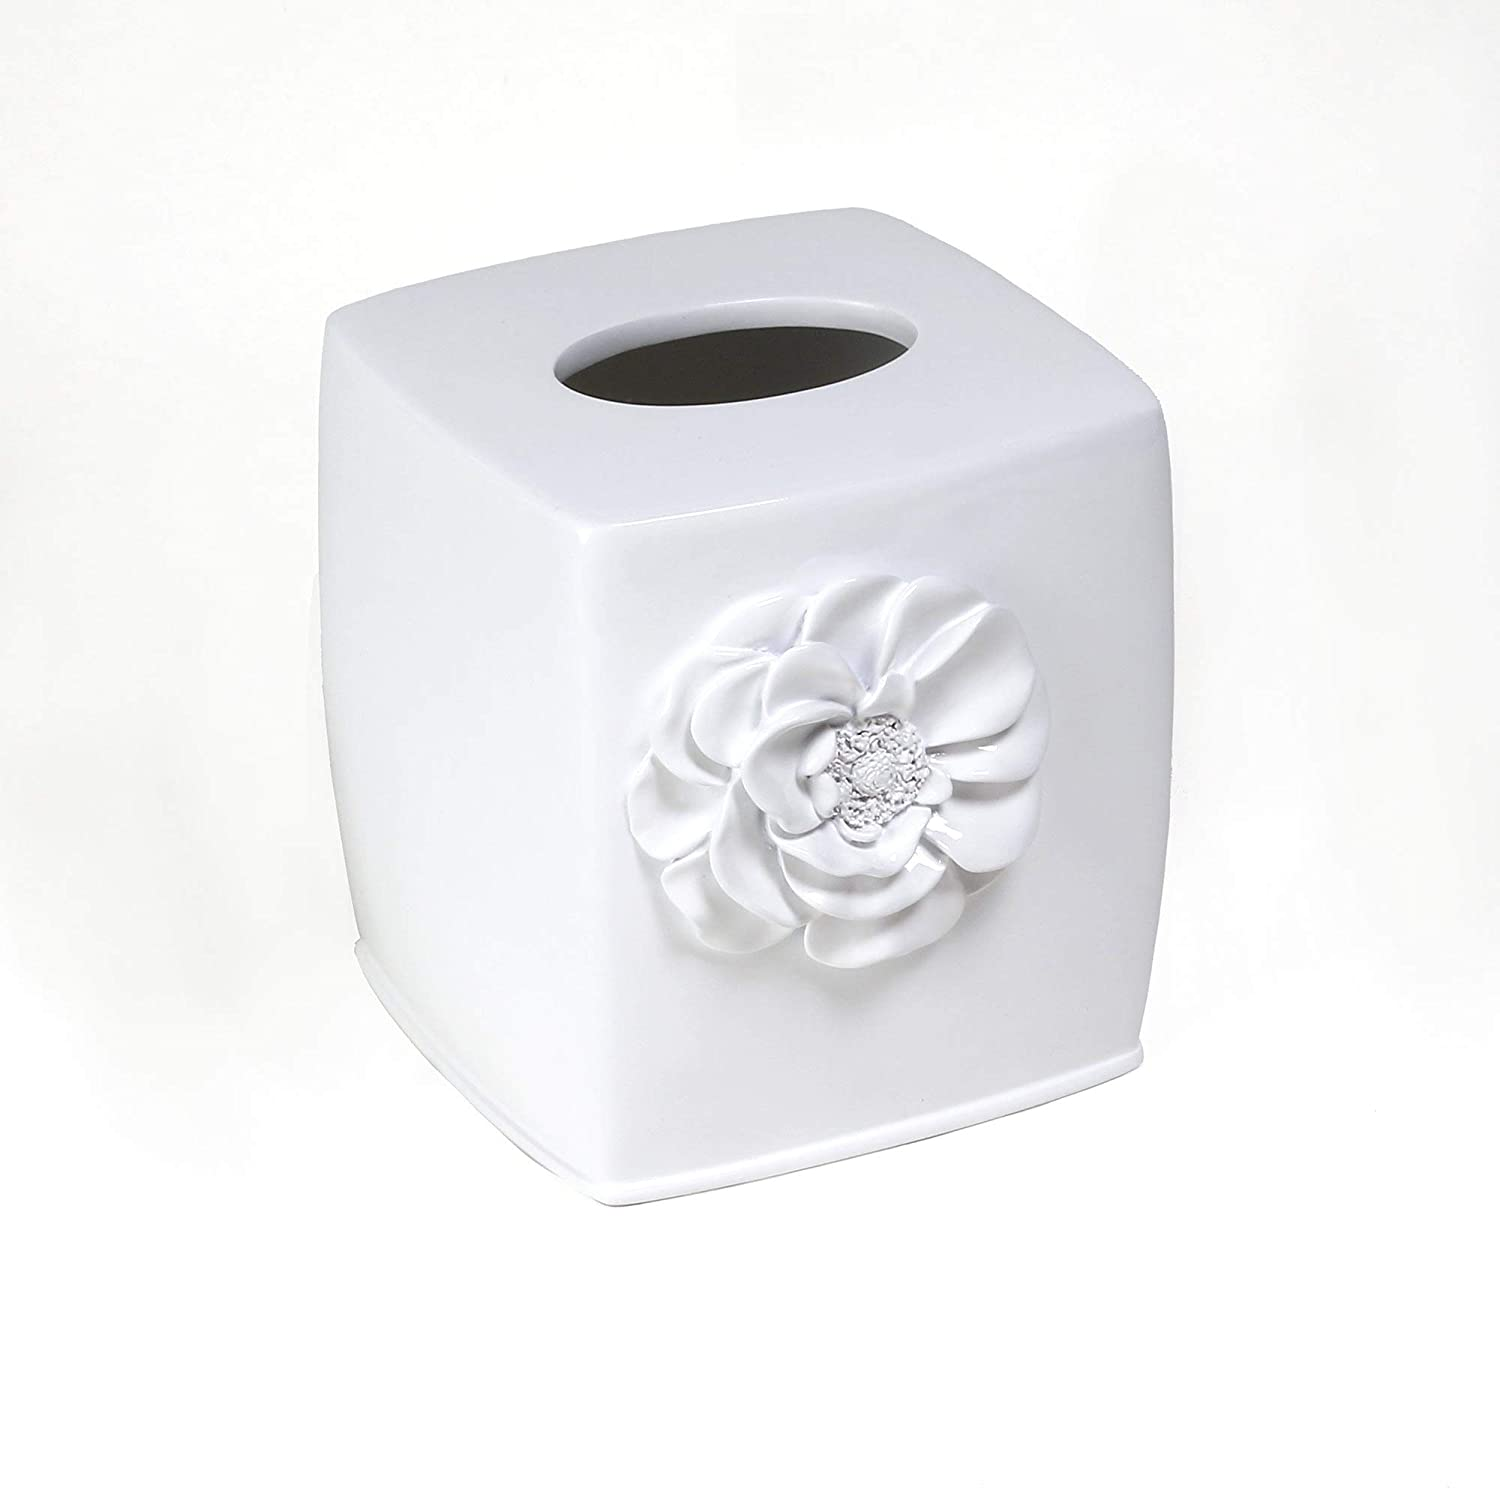 Saturday Knight Ltd Keila Rose Stylish Decorated Easily Fit & Ultra-Durable Everyday Use Soap Dish .89x3.77x5.53 - White